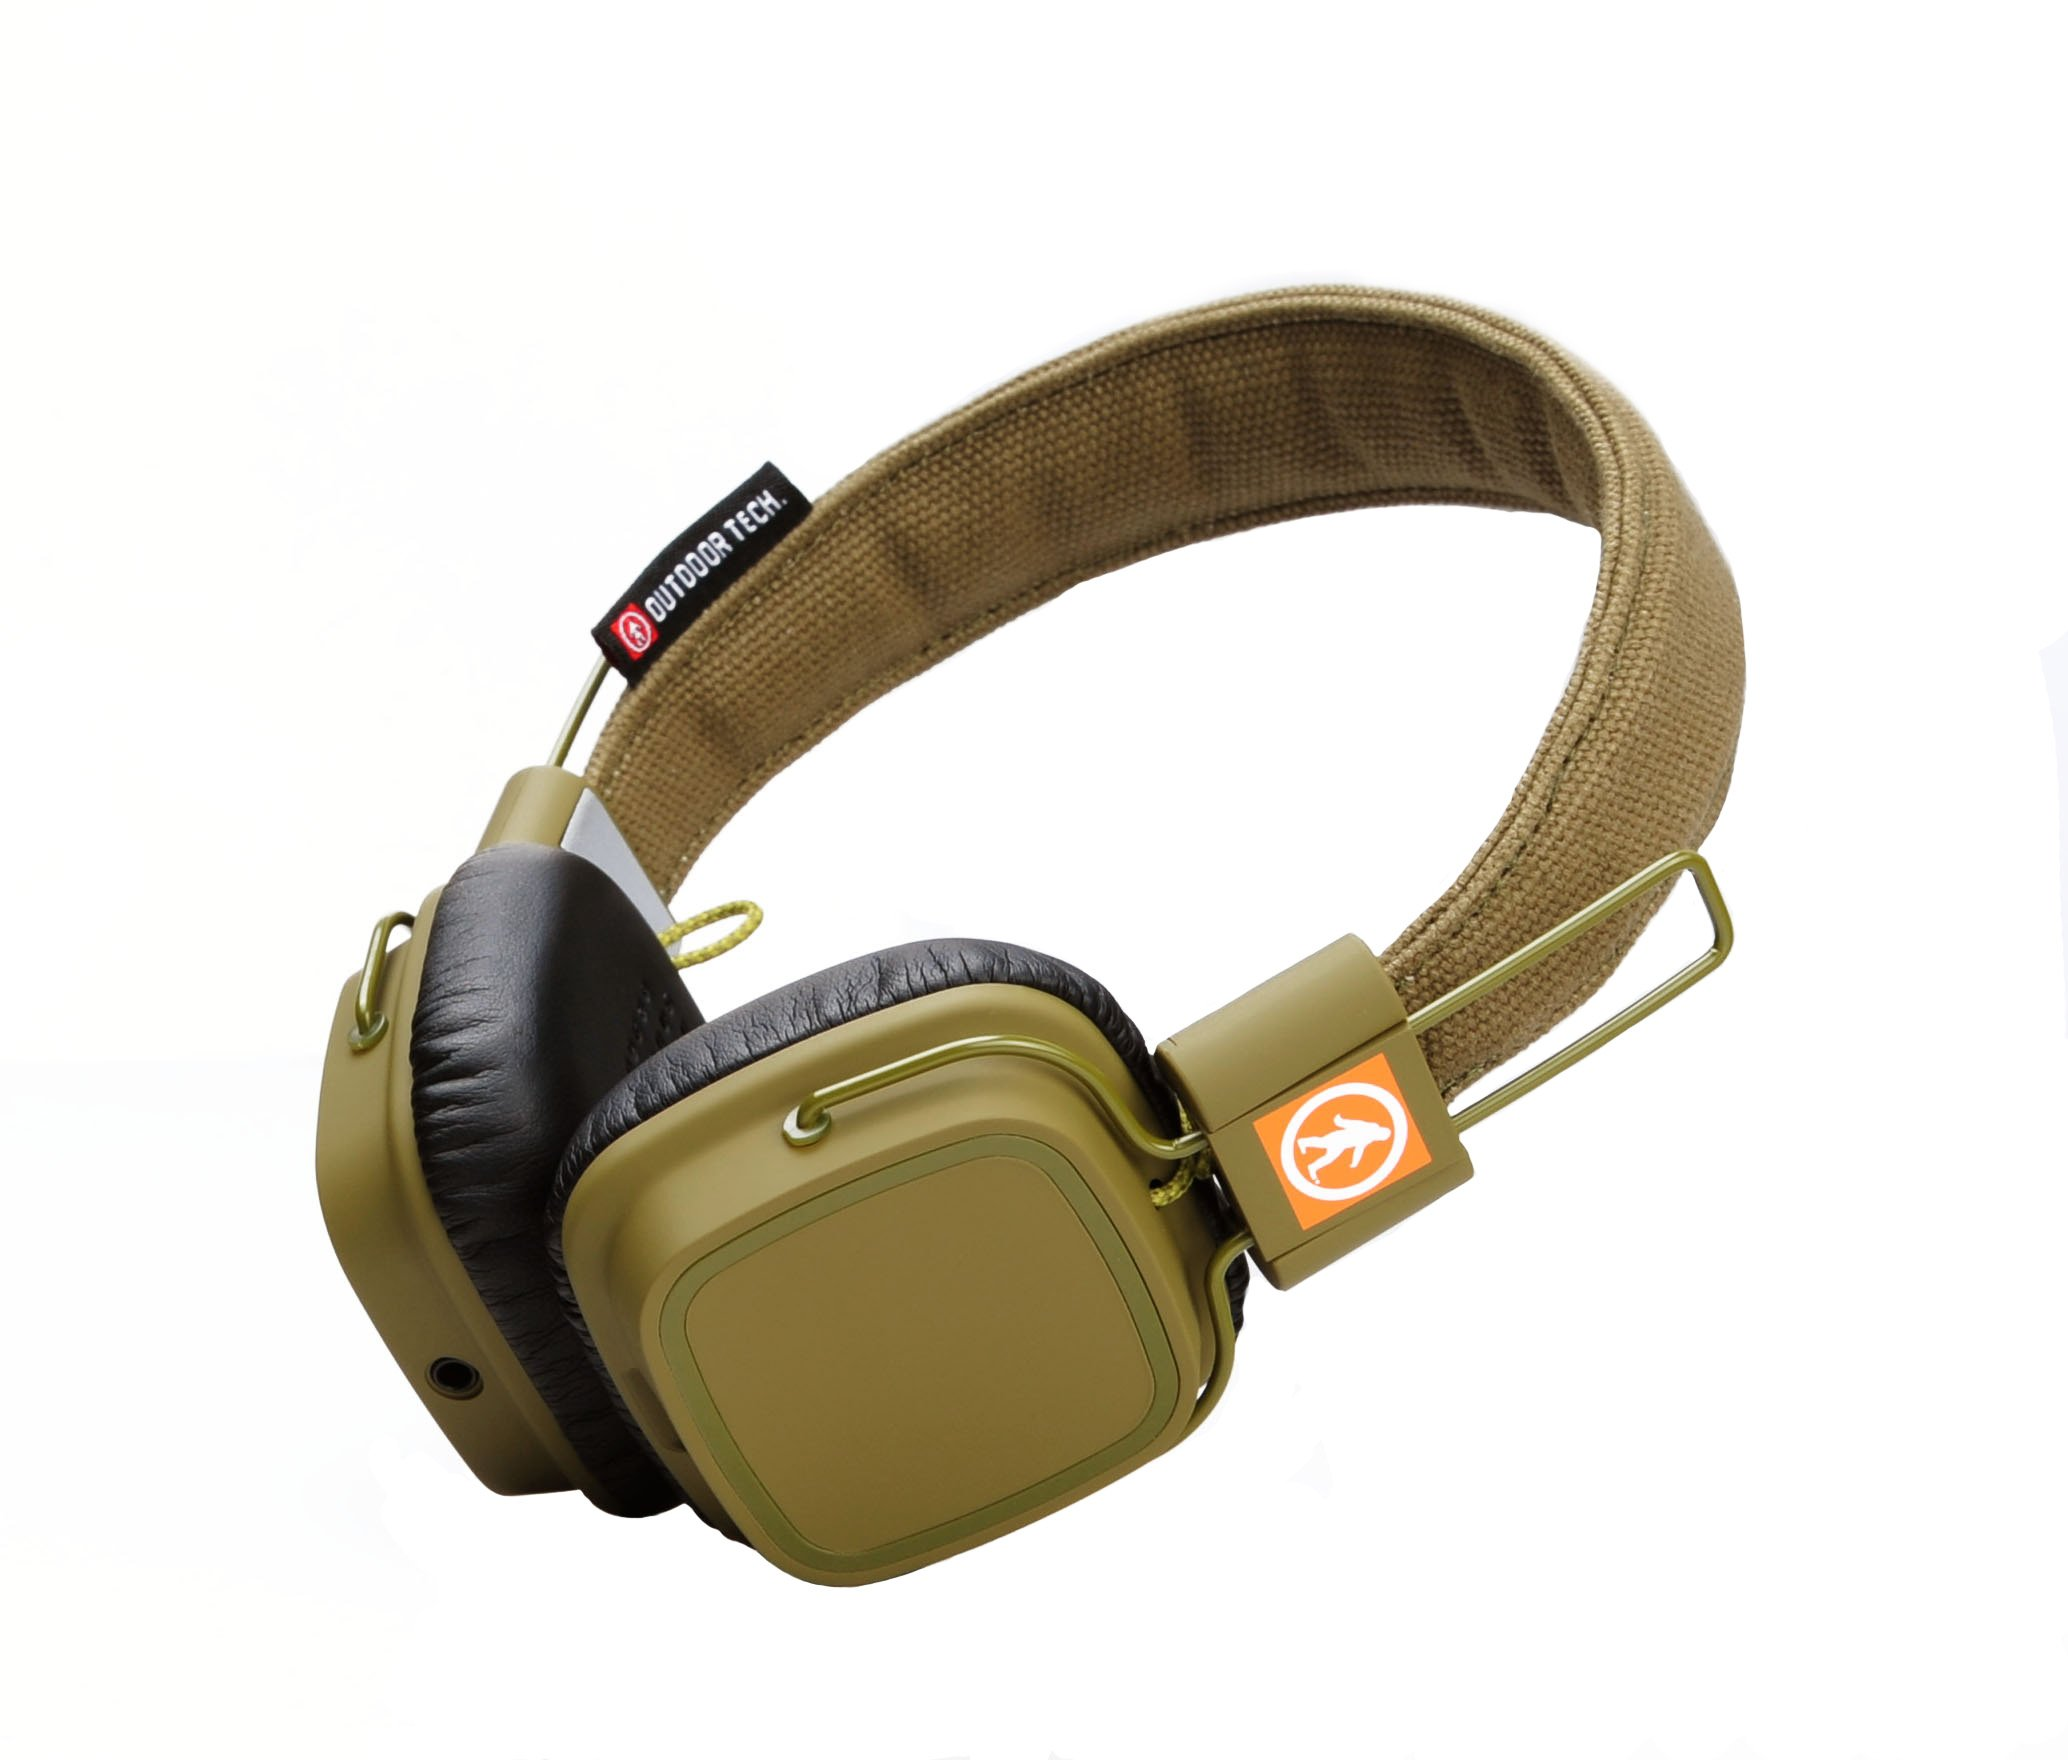 Outdoor Tech OT1400 Privates - Wireless Bluetooth Headphones with Touch Control (Army Green) by Outdoor Technology (Image #4)